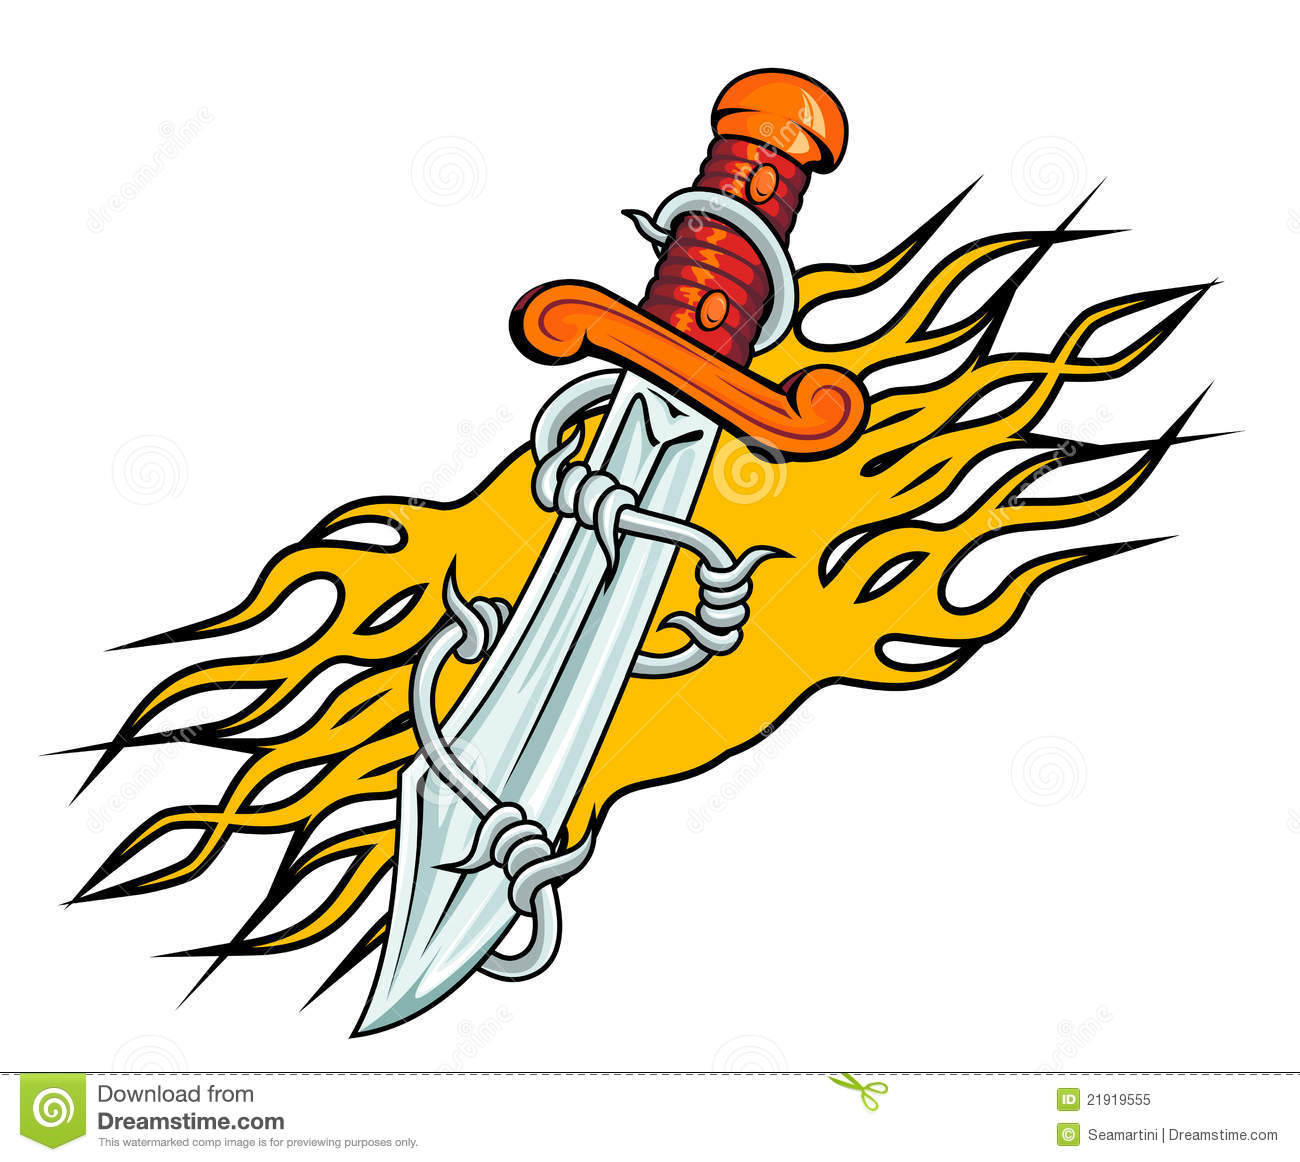 Old school tattoo dagger through heart stock photos image - Dagger With Barbed Wire And Flames Royalty Free Stock